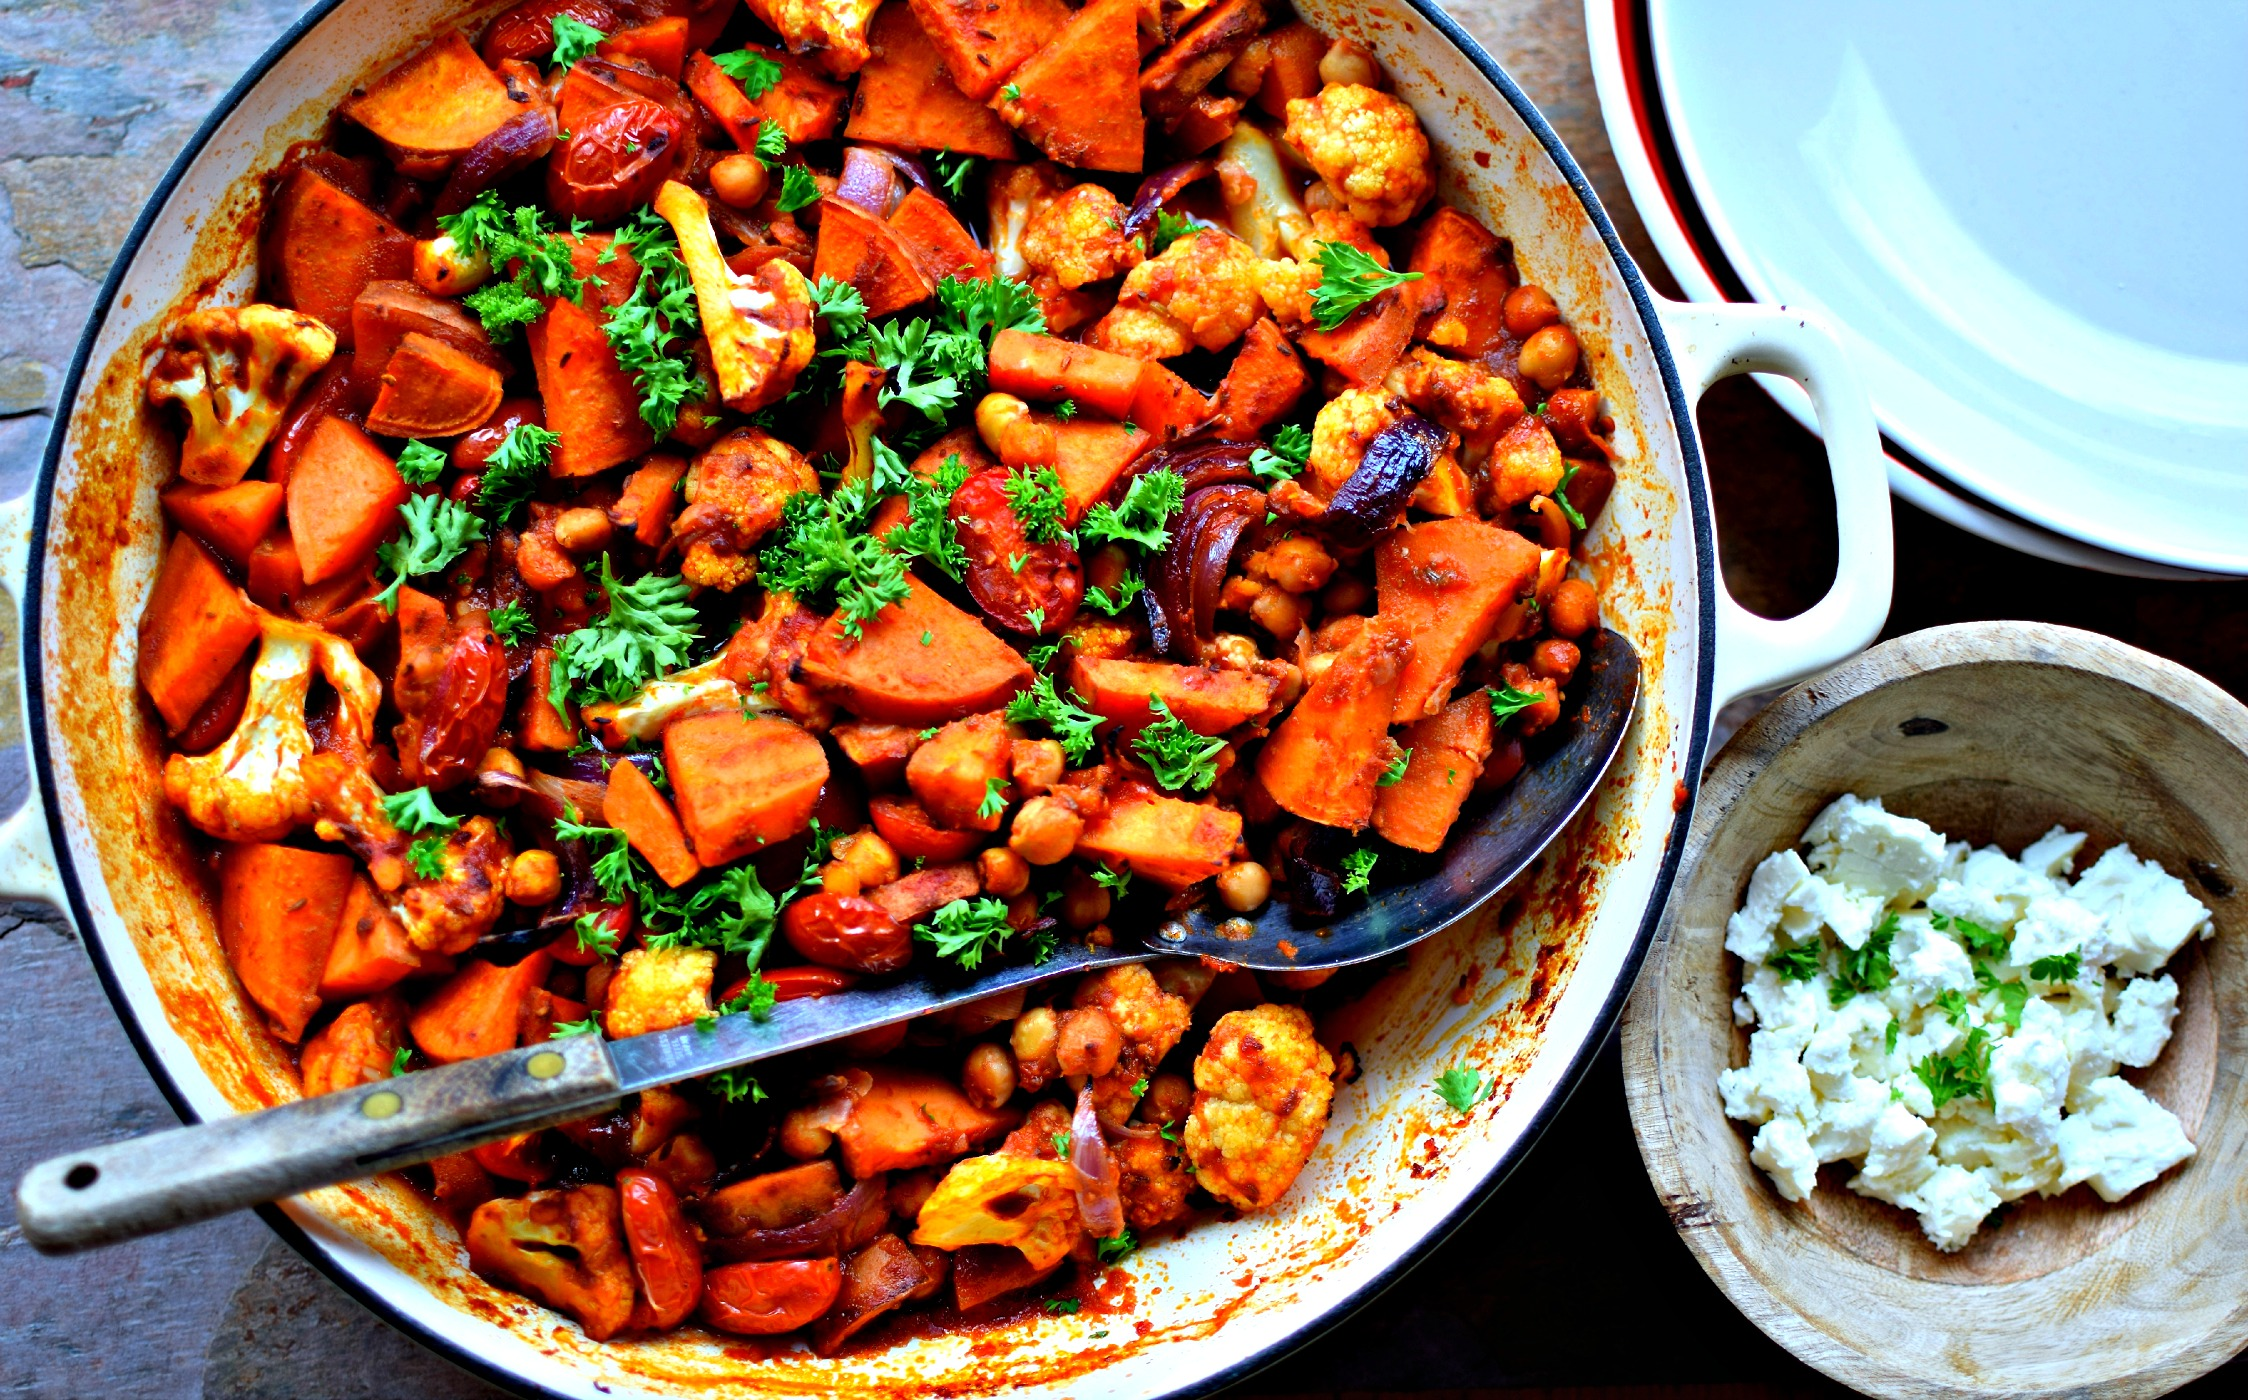 Can You Get Food Poisoning From Sweet Potatoes